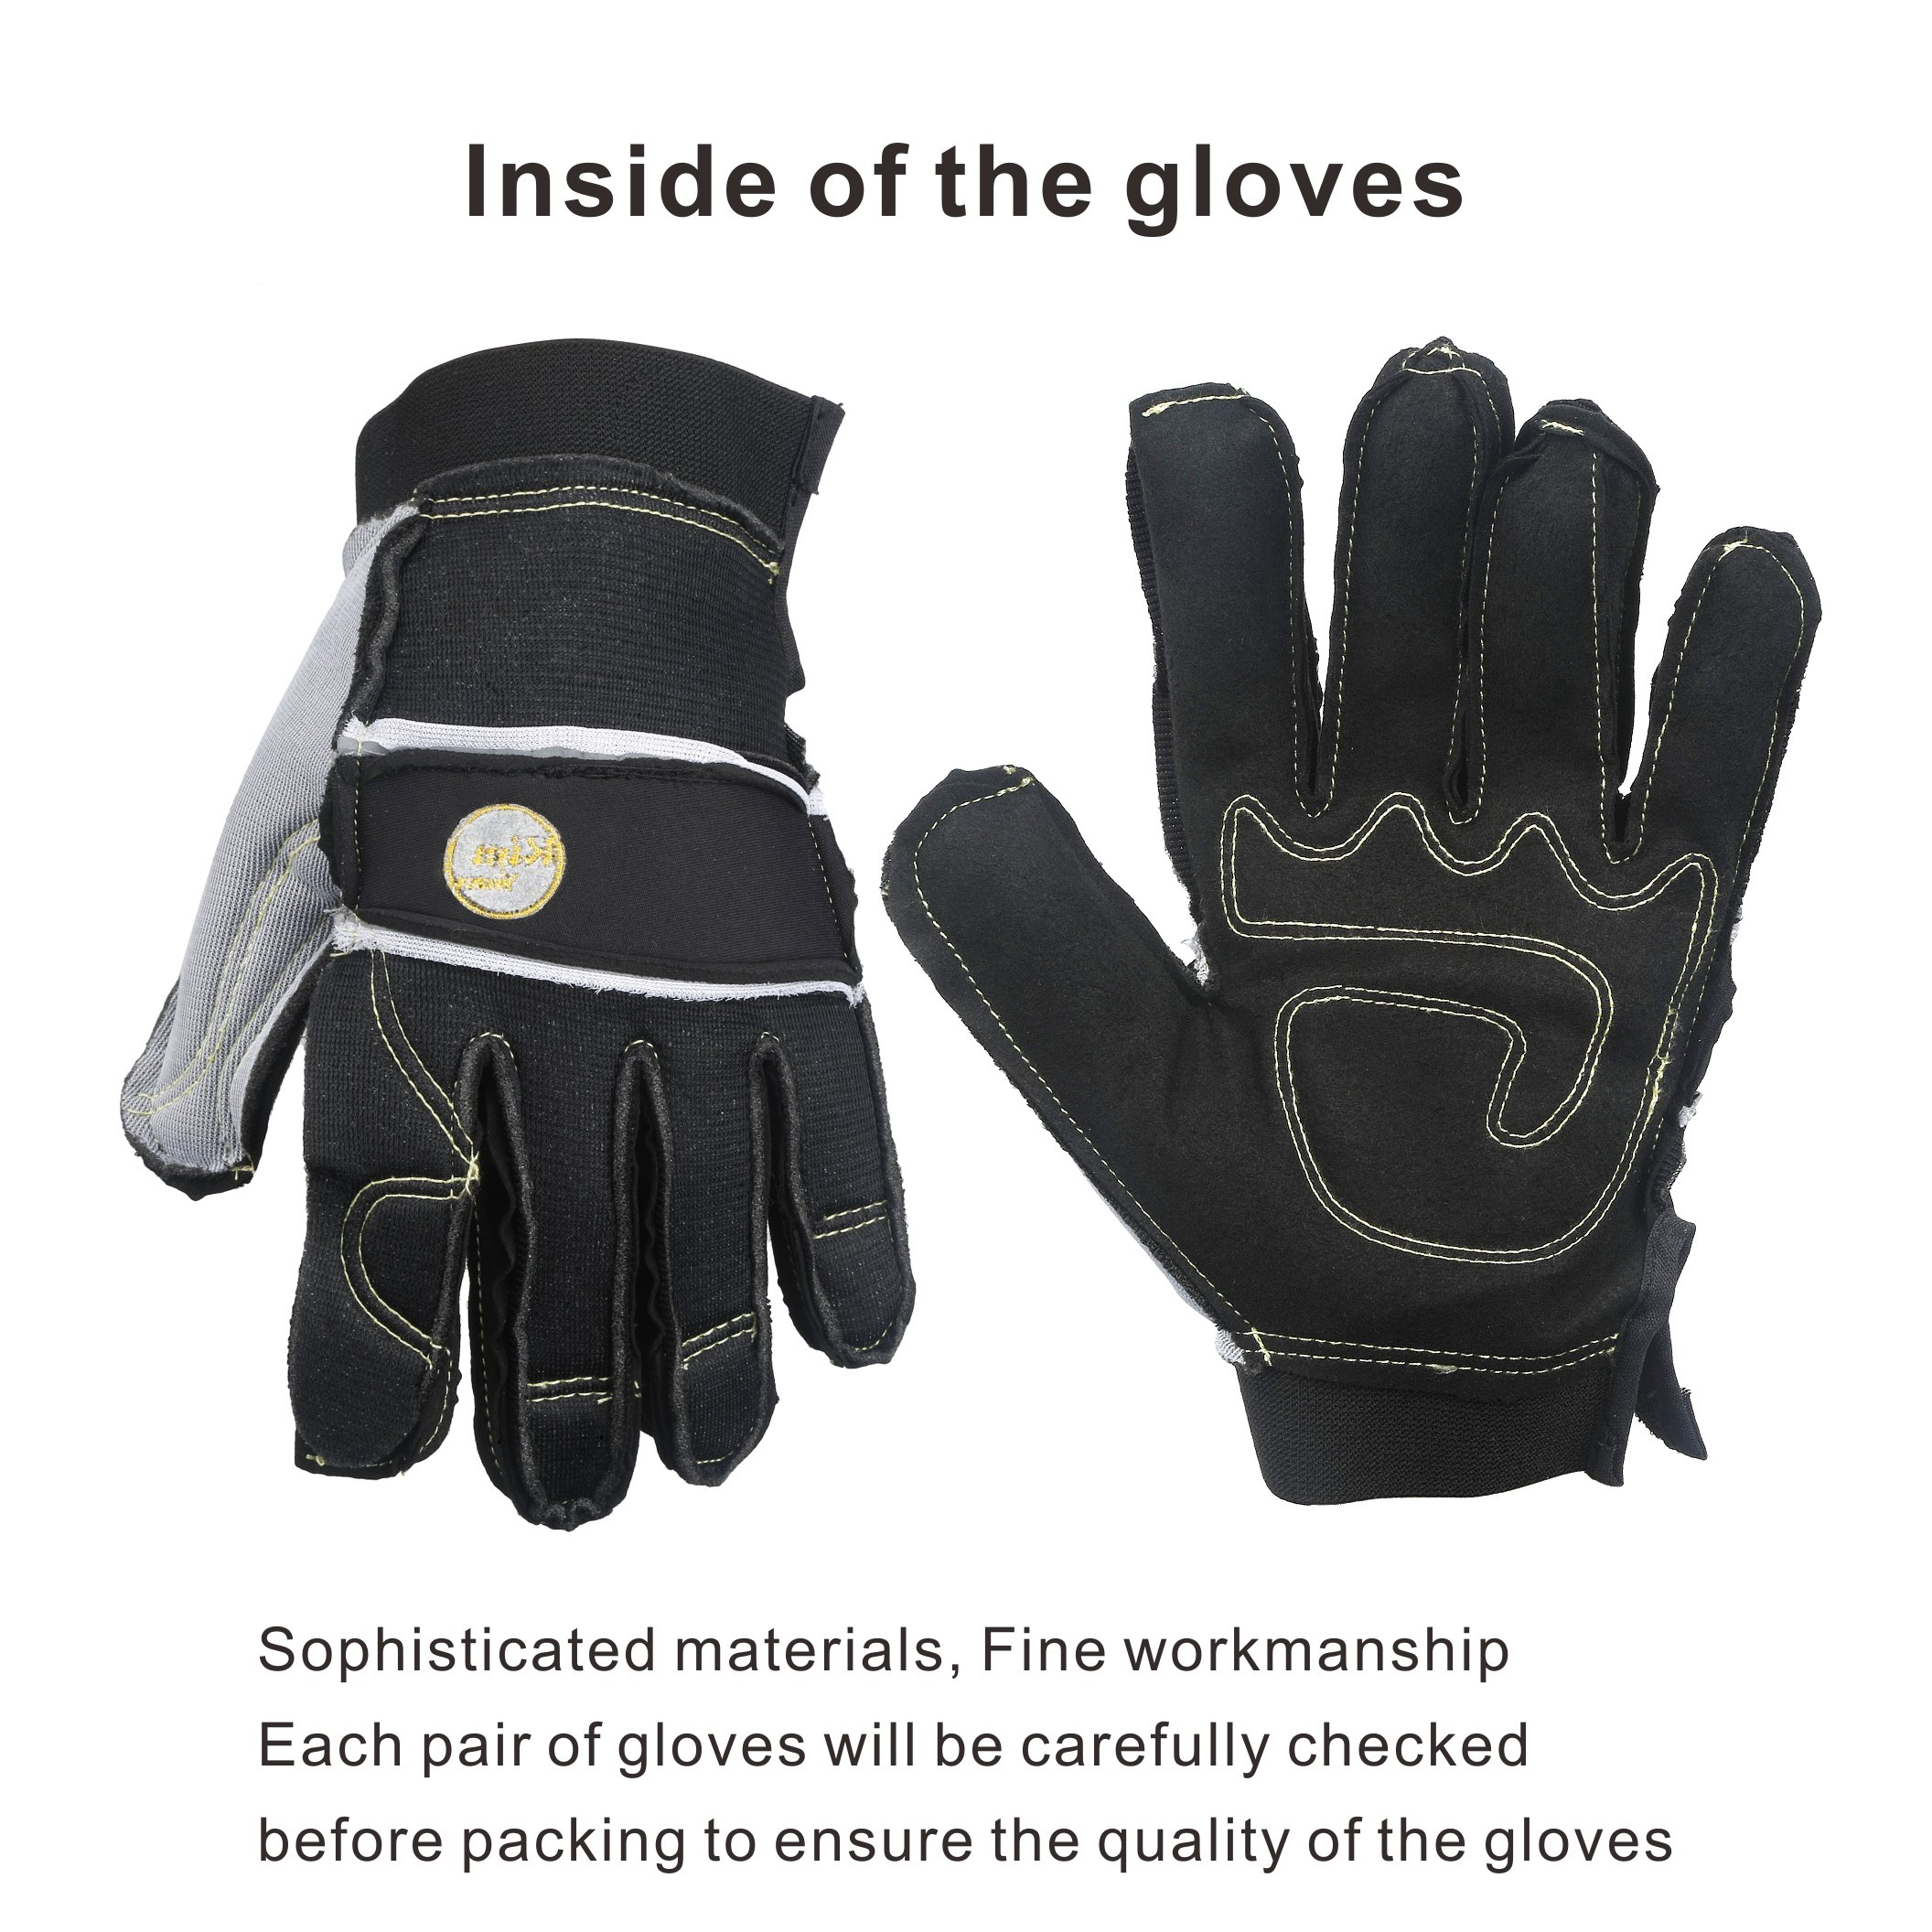 KIM YUAN Mechanic General Utility Breathable Work Gloves Touch Screen, Skid/Abrasion Resistant, Pefect for Warehouse, Construction, Outdoor, Men & Women, XL by KIM YUAN (Image #5)